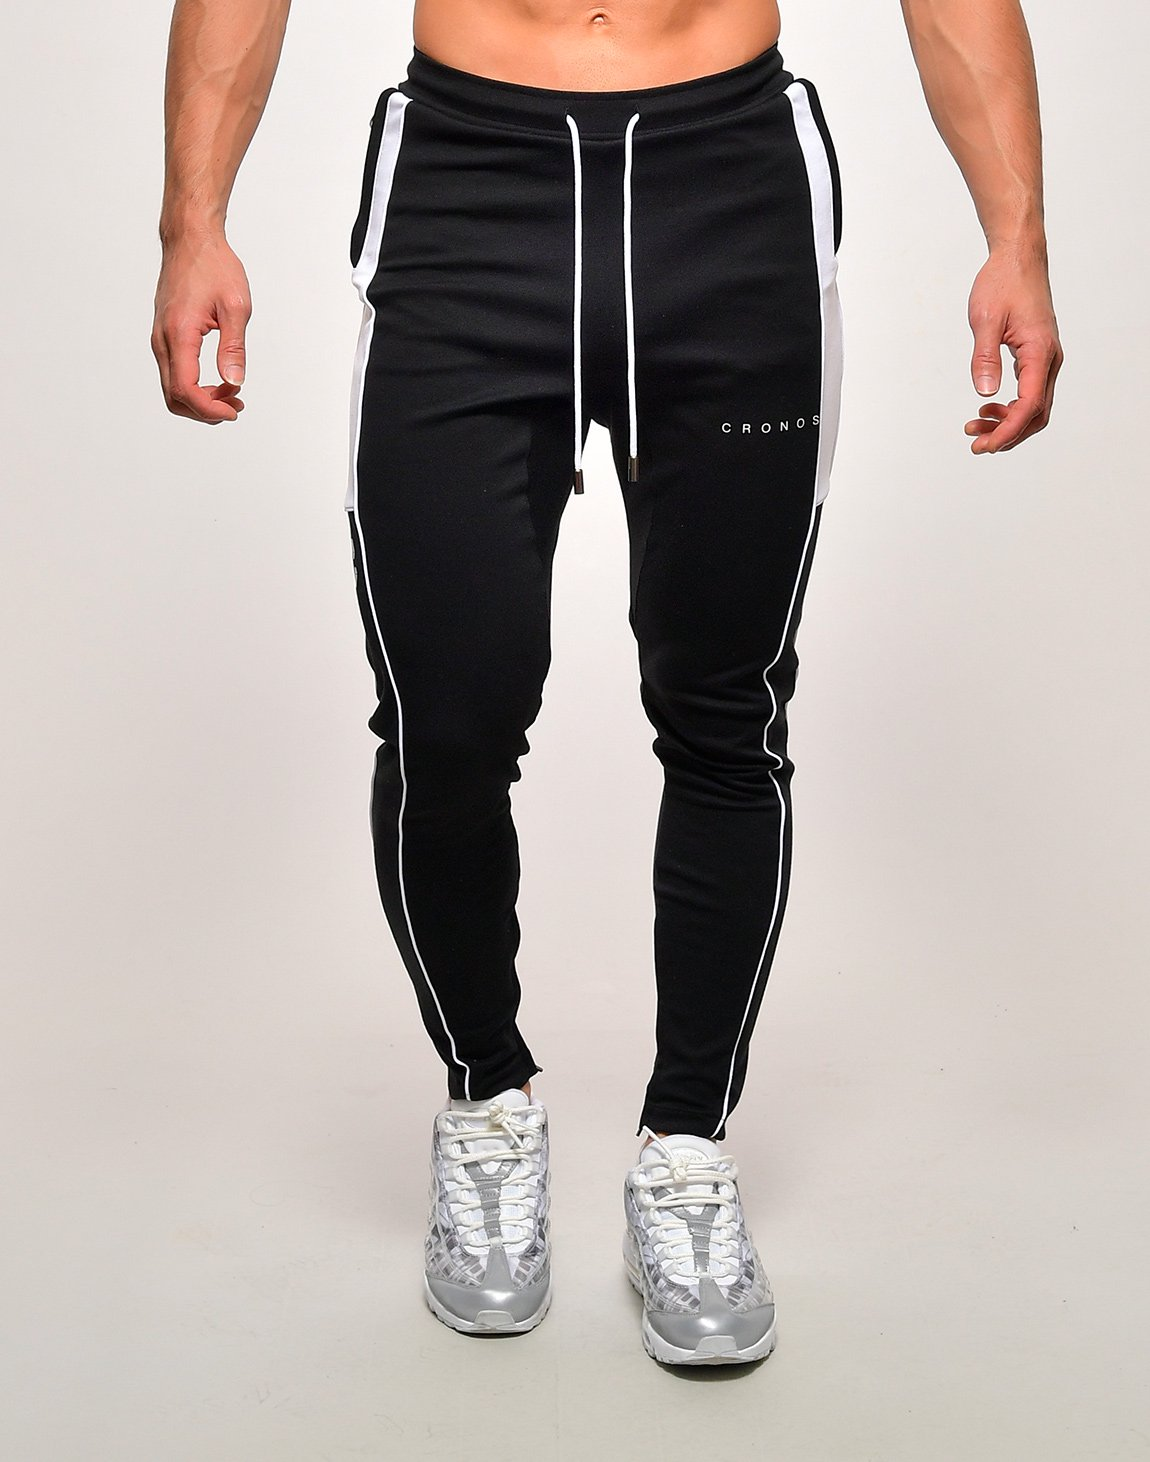 <img class='new_mark_img1' src='https://img.shop-pro.jp/img/new/icons1.gif' style='border:none;display:inline;margin:0px;padding:0px;width:auto;' />CRONOS ROUND PULLER ZIP PANTS【BLACK×WHITE】